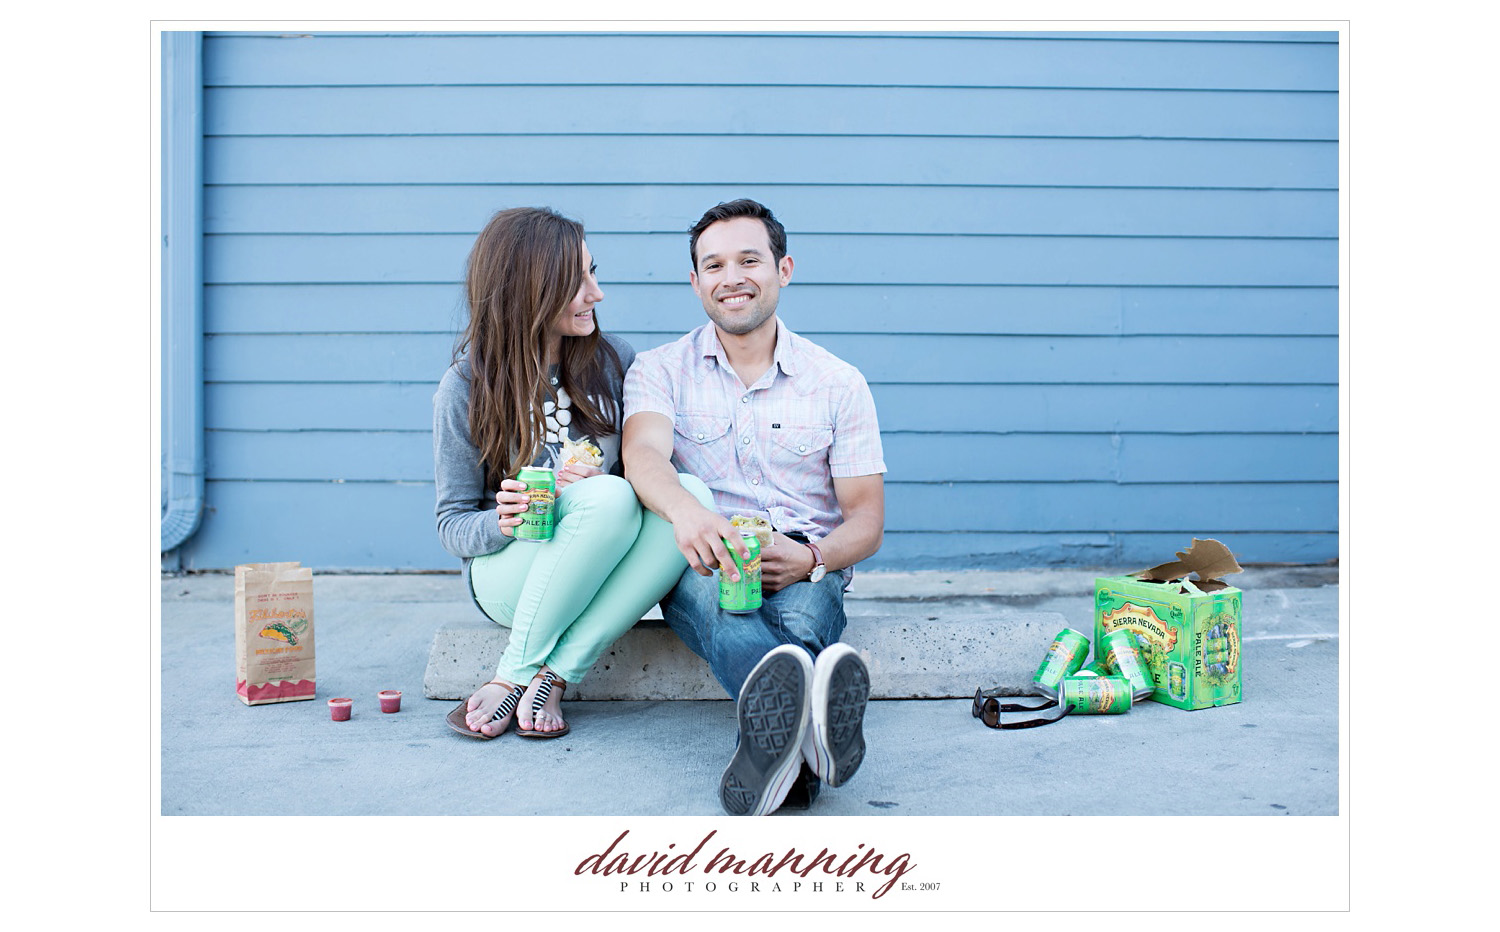 Encinitas-Engagement-Photos-San-Diego-David-Manning_0010.jpg